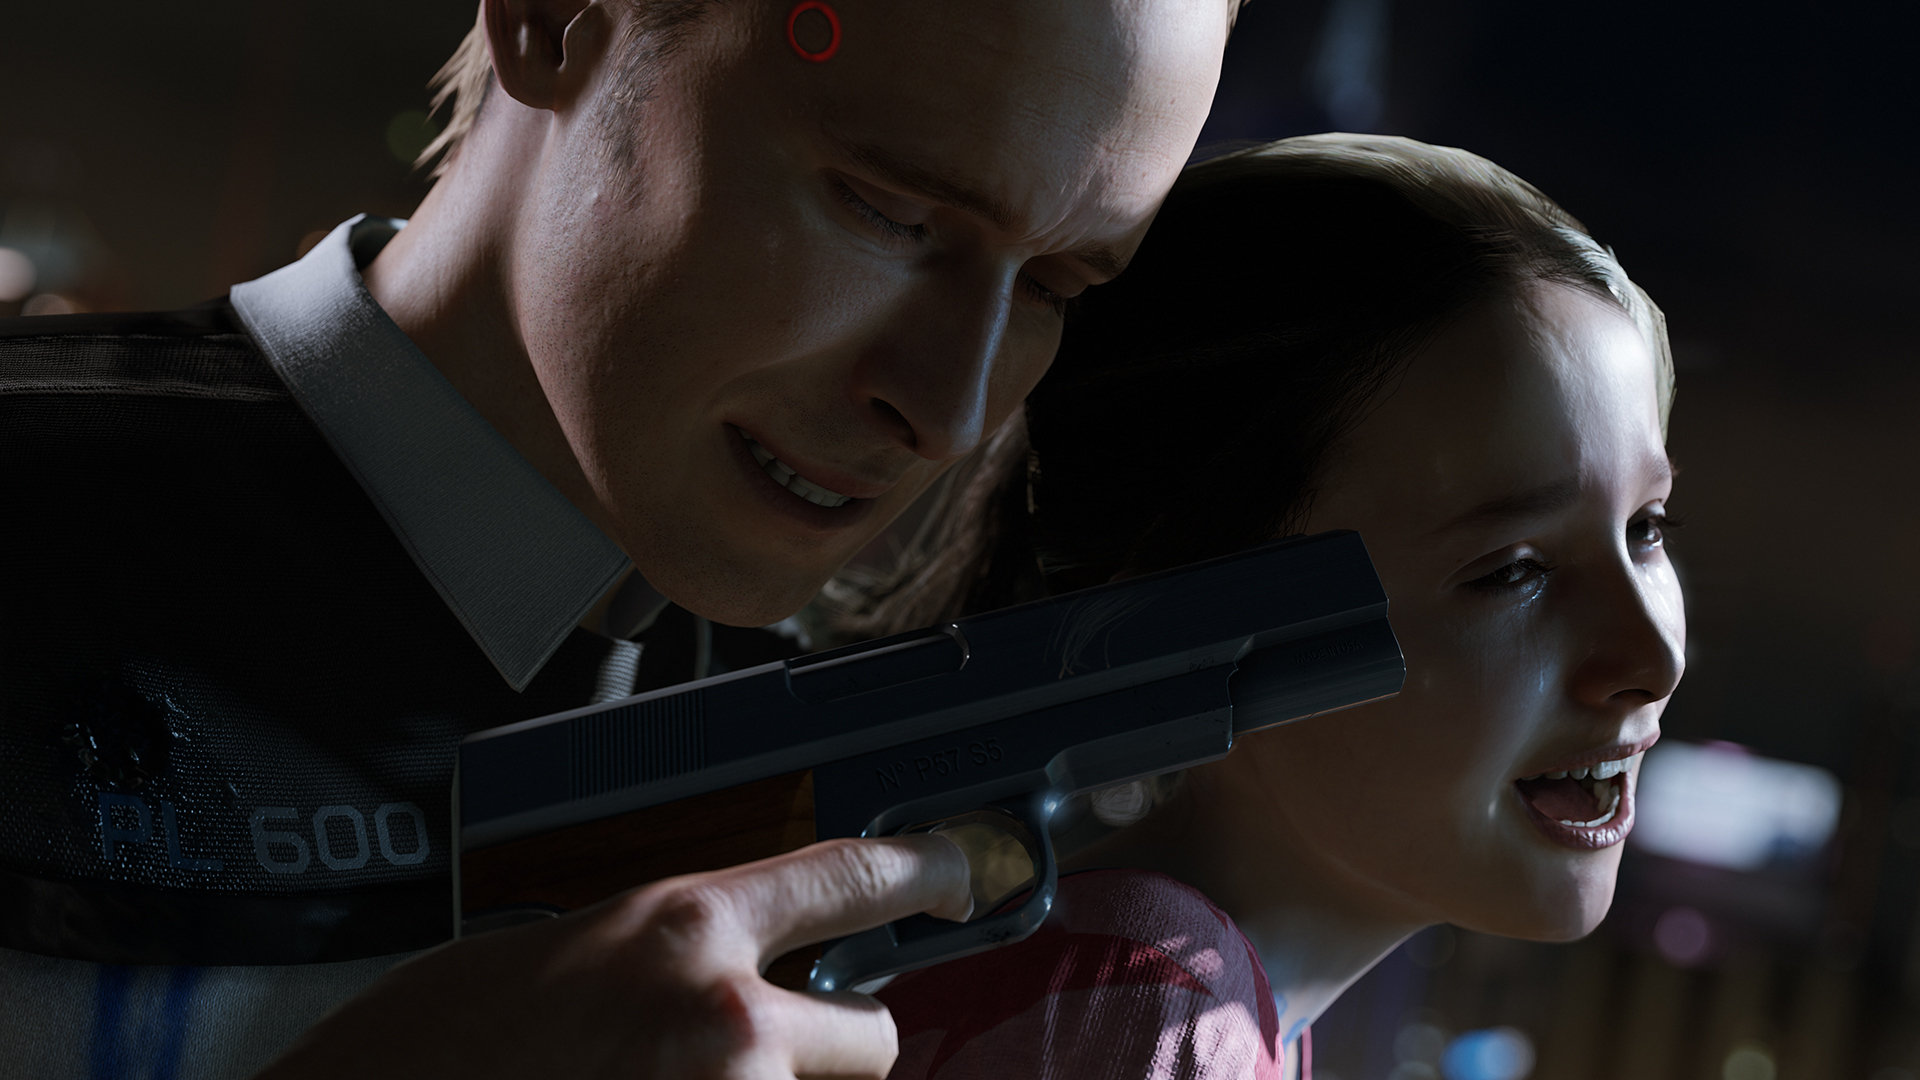 Detroit: Become Human is a 2018 game says Quantic Dream